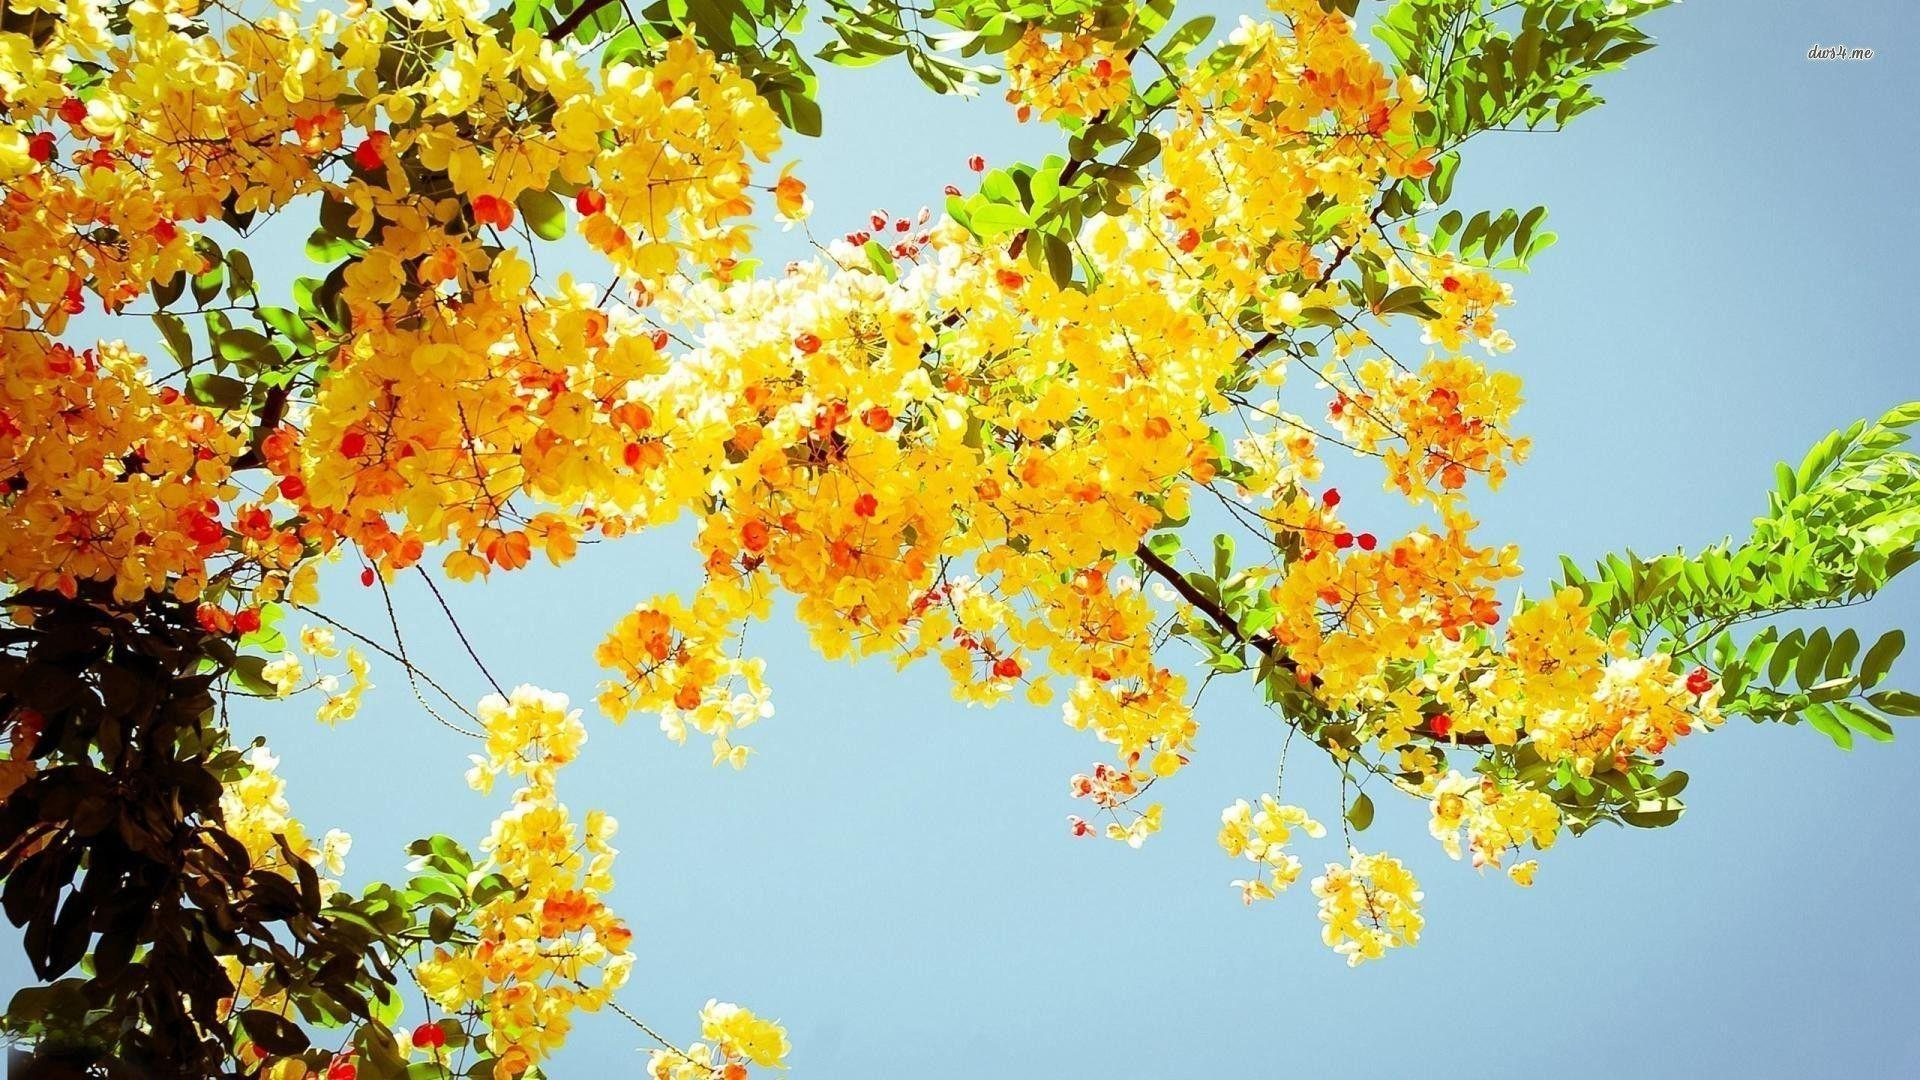 Flower Wallpapers Image - Wallpaper Cave